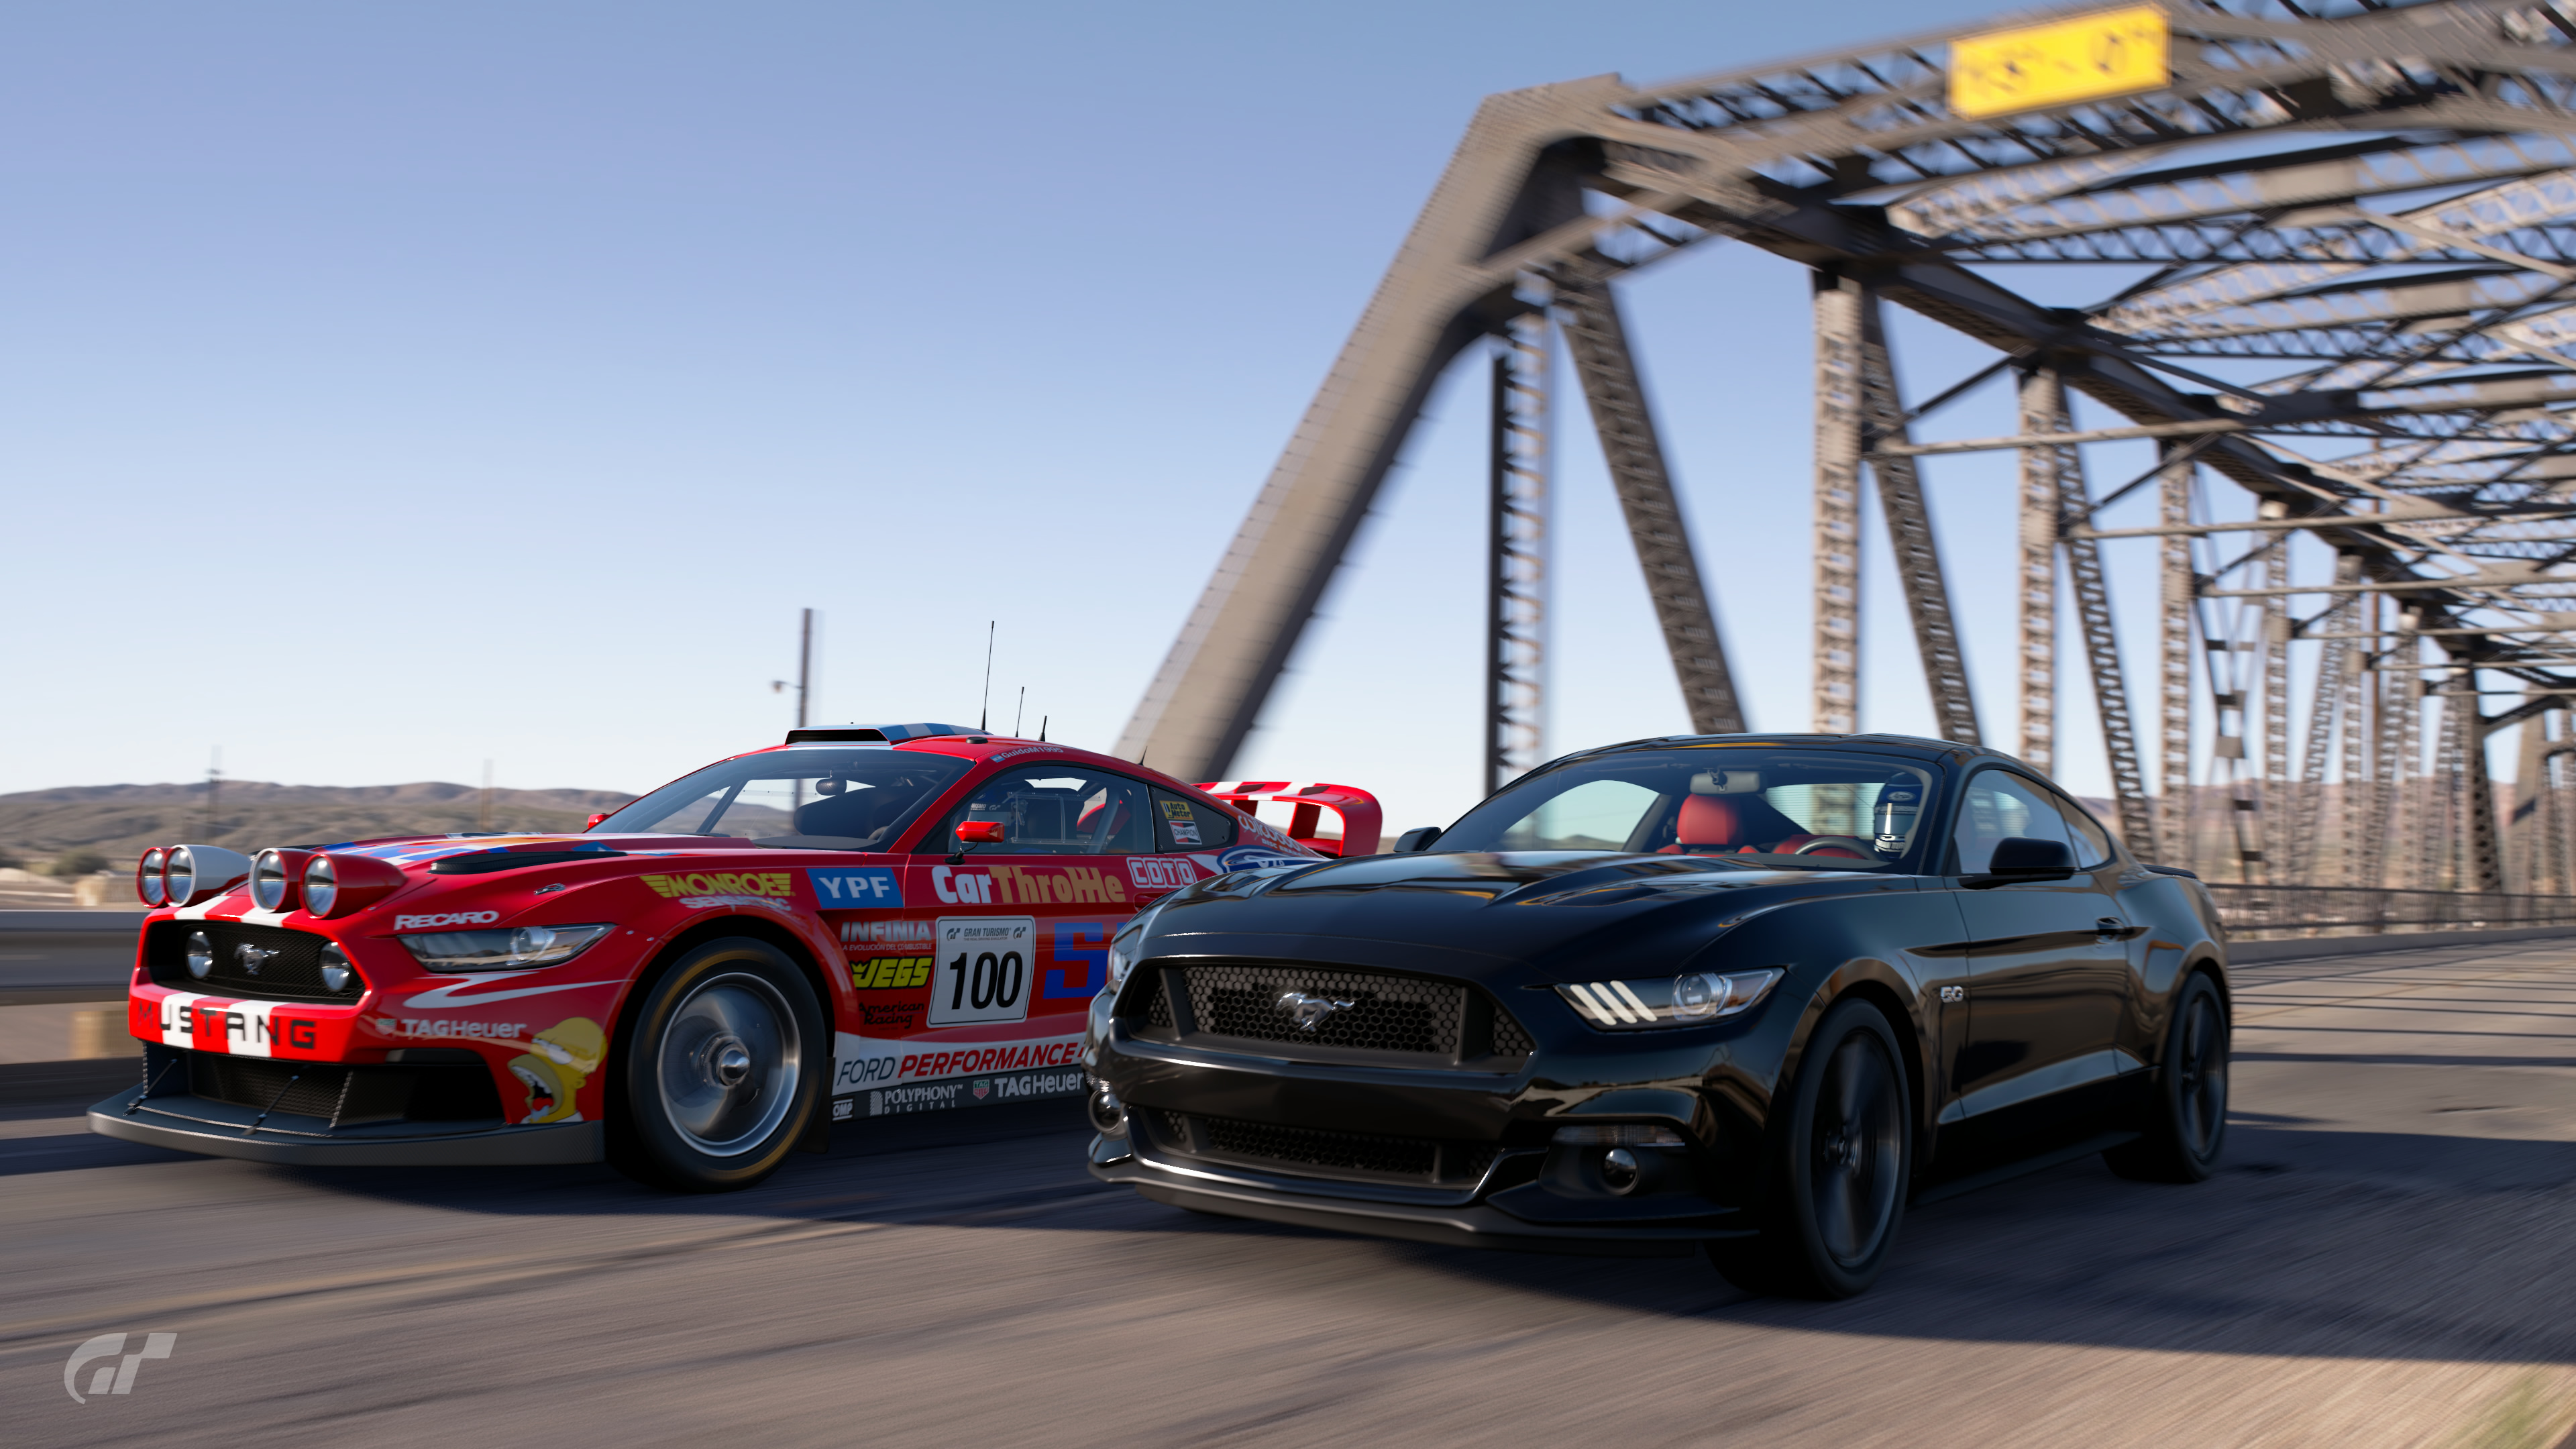 Ford mustang gt and mustang rally car on gran turismo sport gtsportography